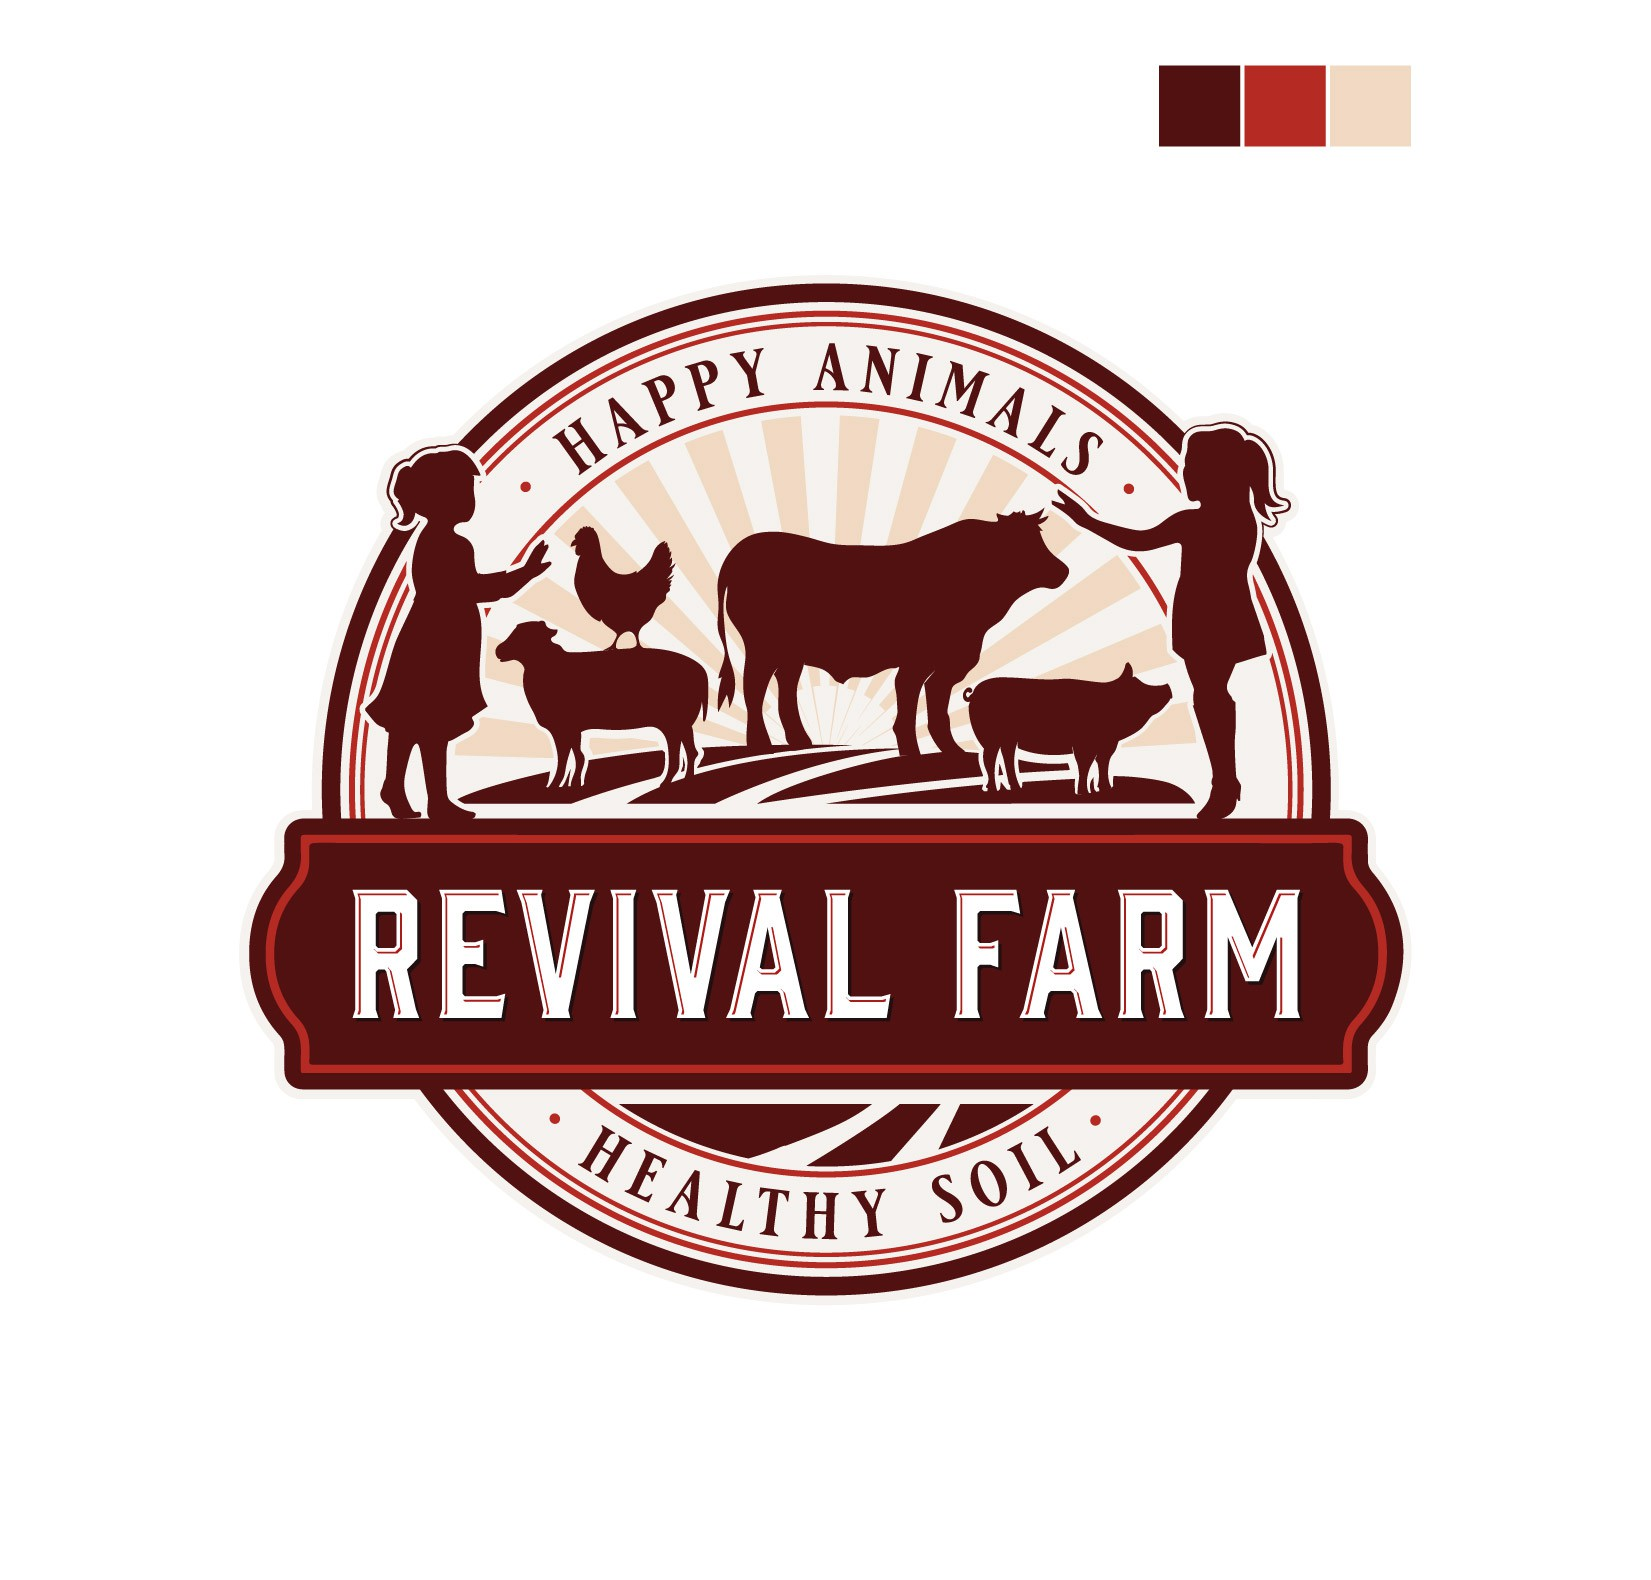 Creative and unique logo for a regenerative agriculture farm!